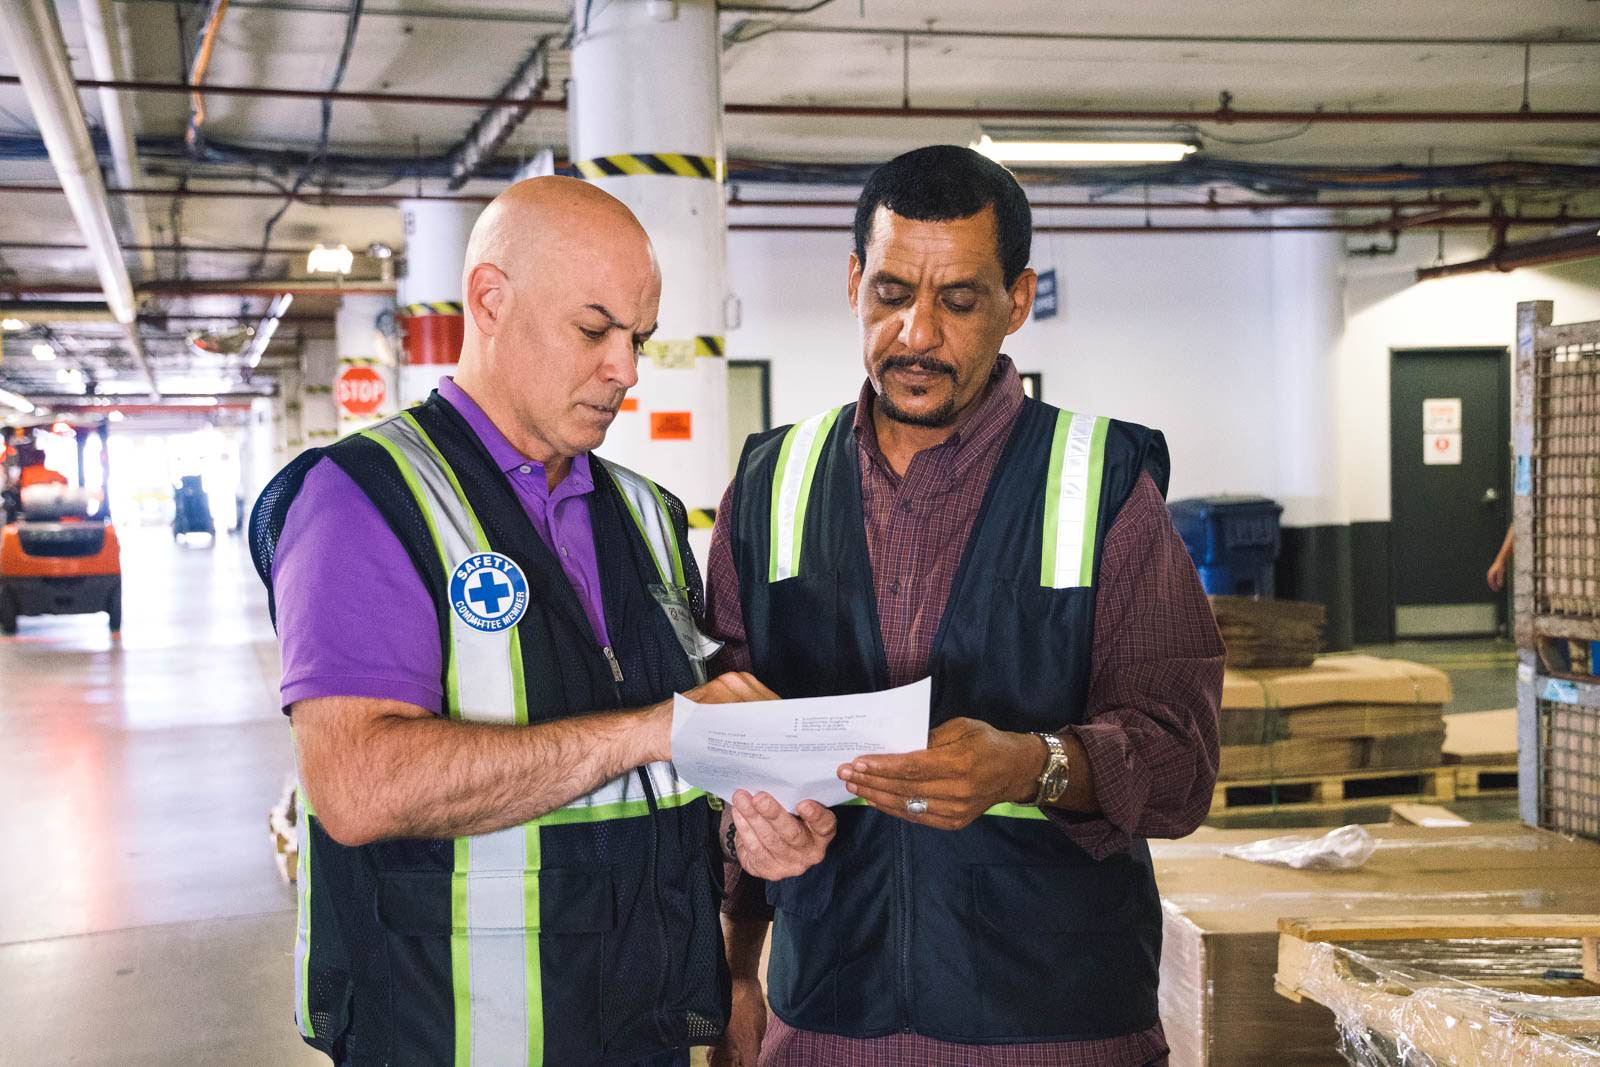 Two warehouse employees review an order form together